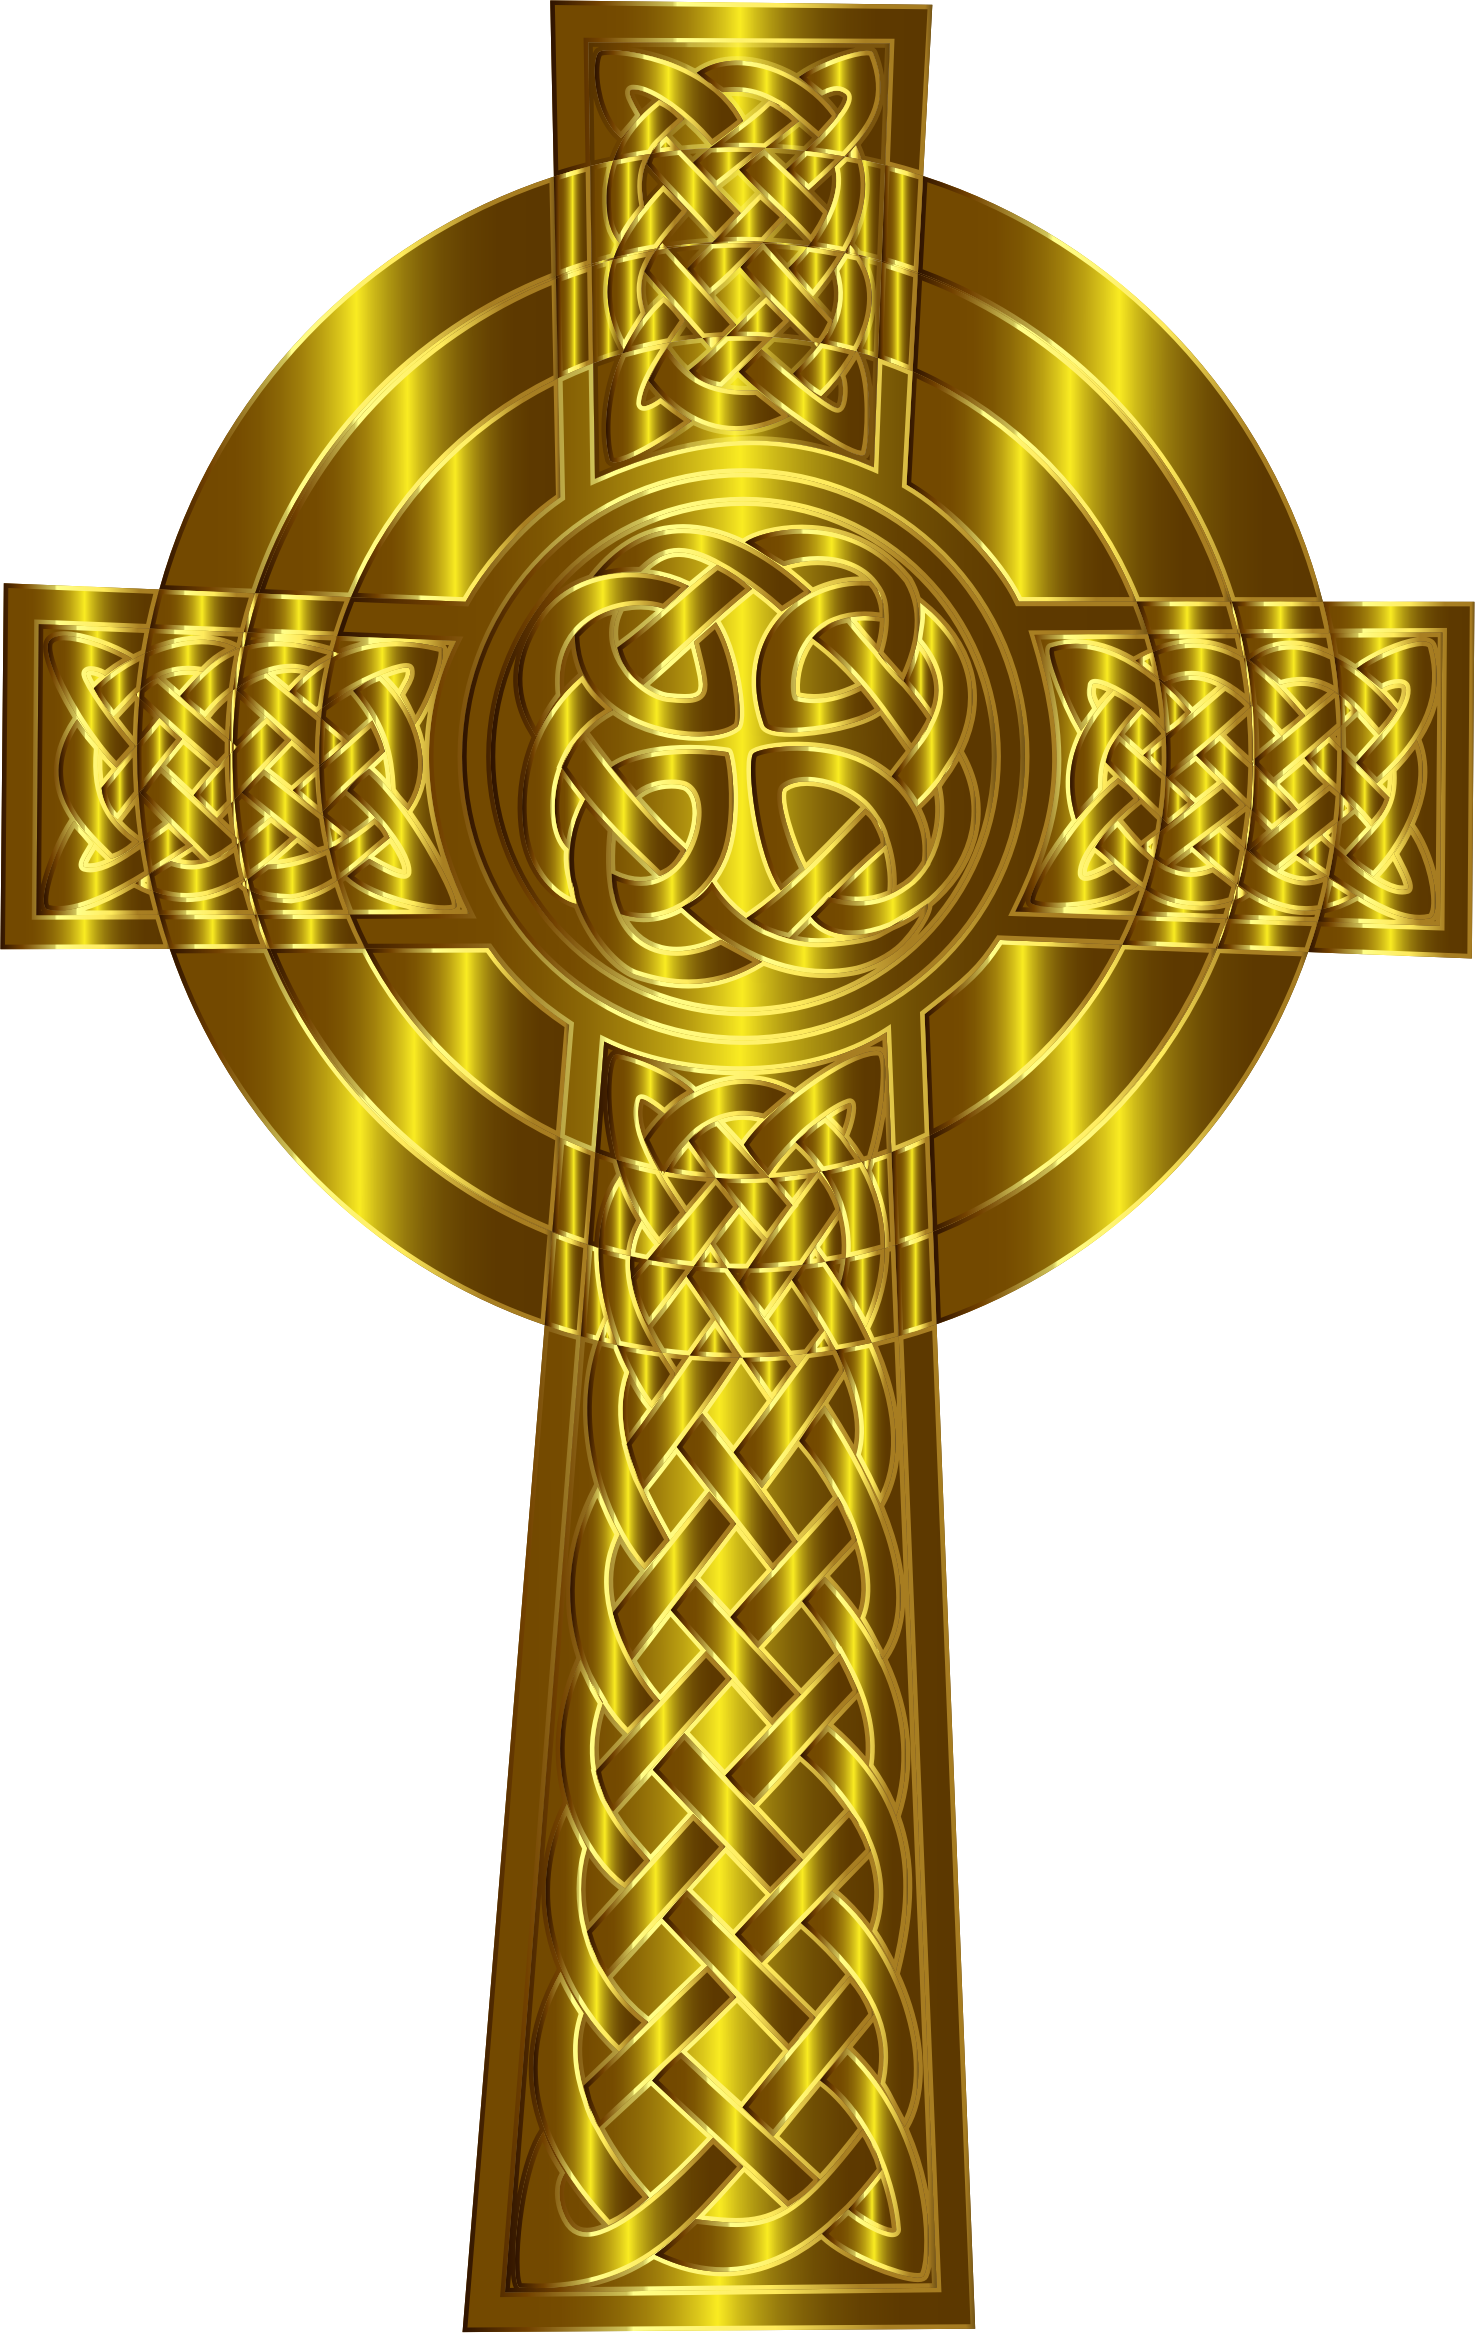 Golden Celtic Cross 6 by GDJ